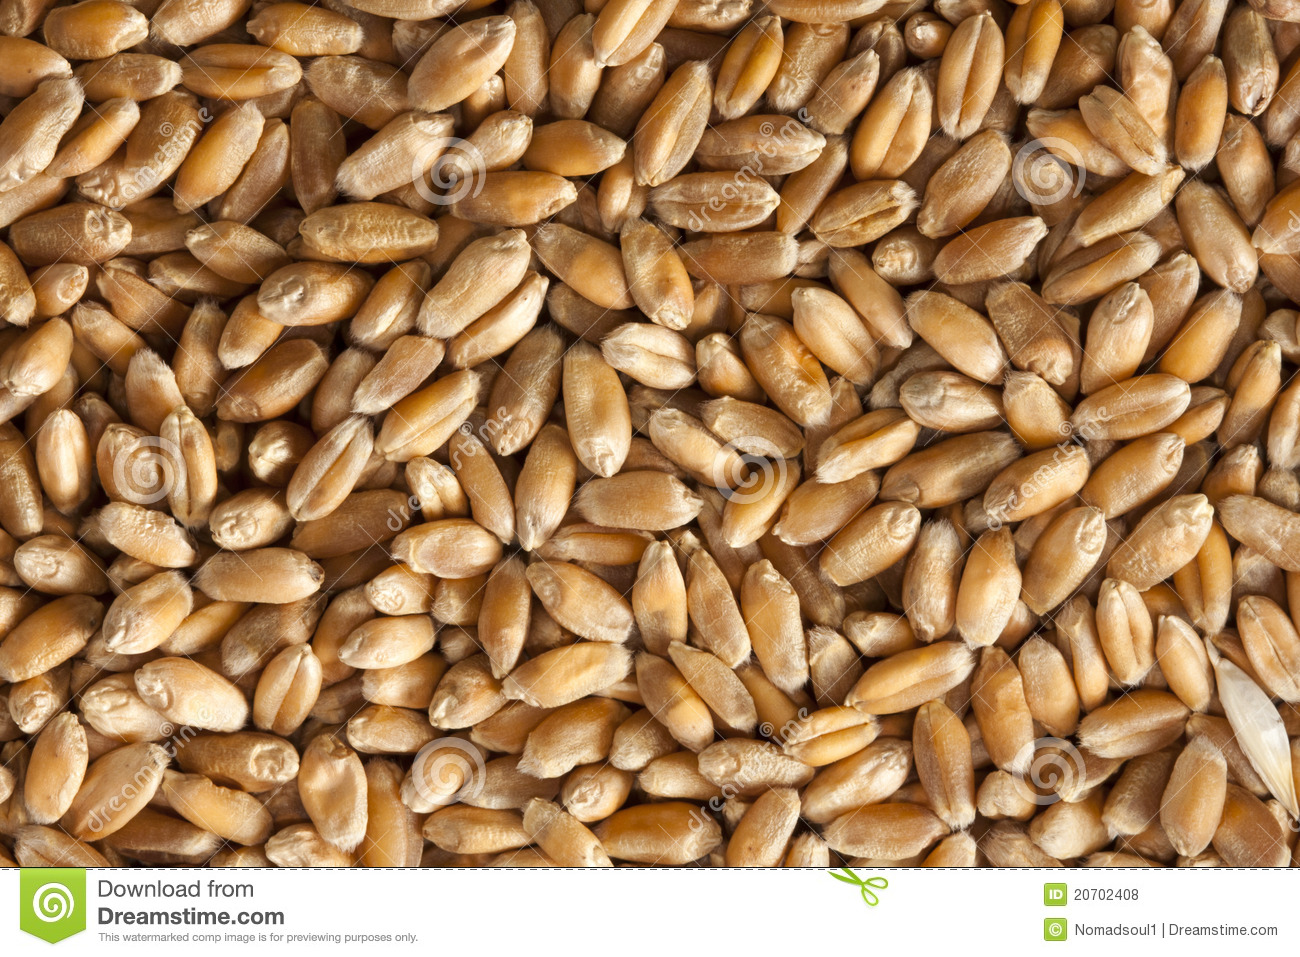 wheat-seeds-20702408.jpg